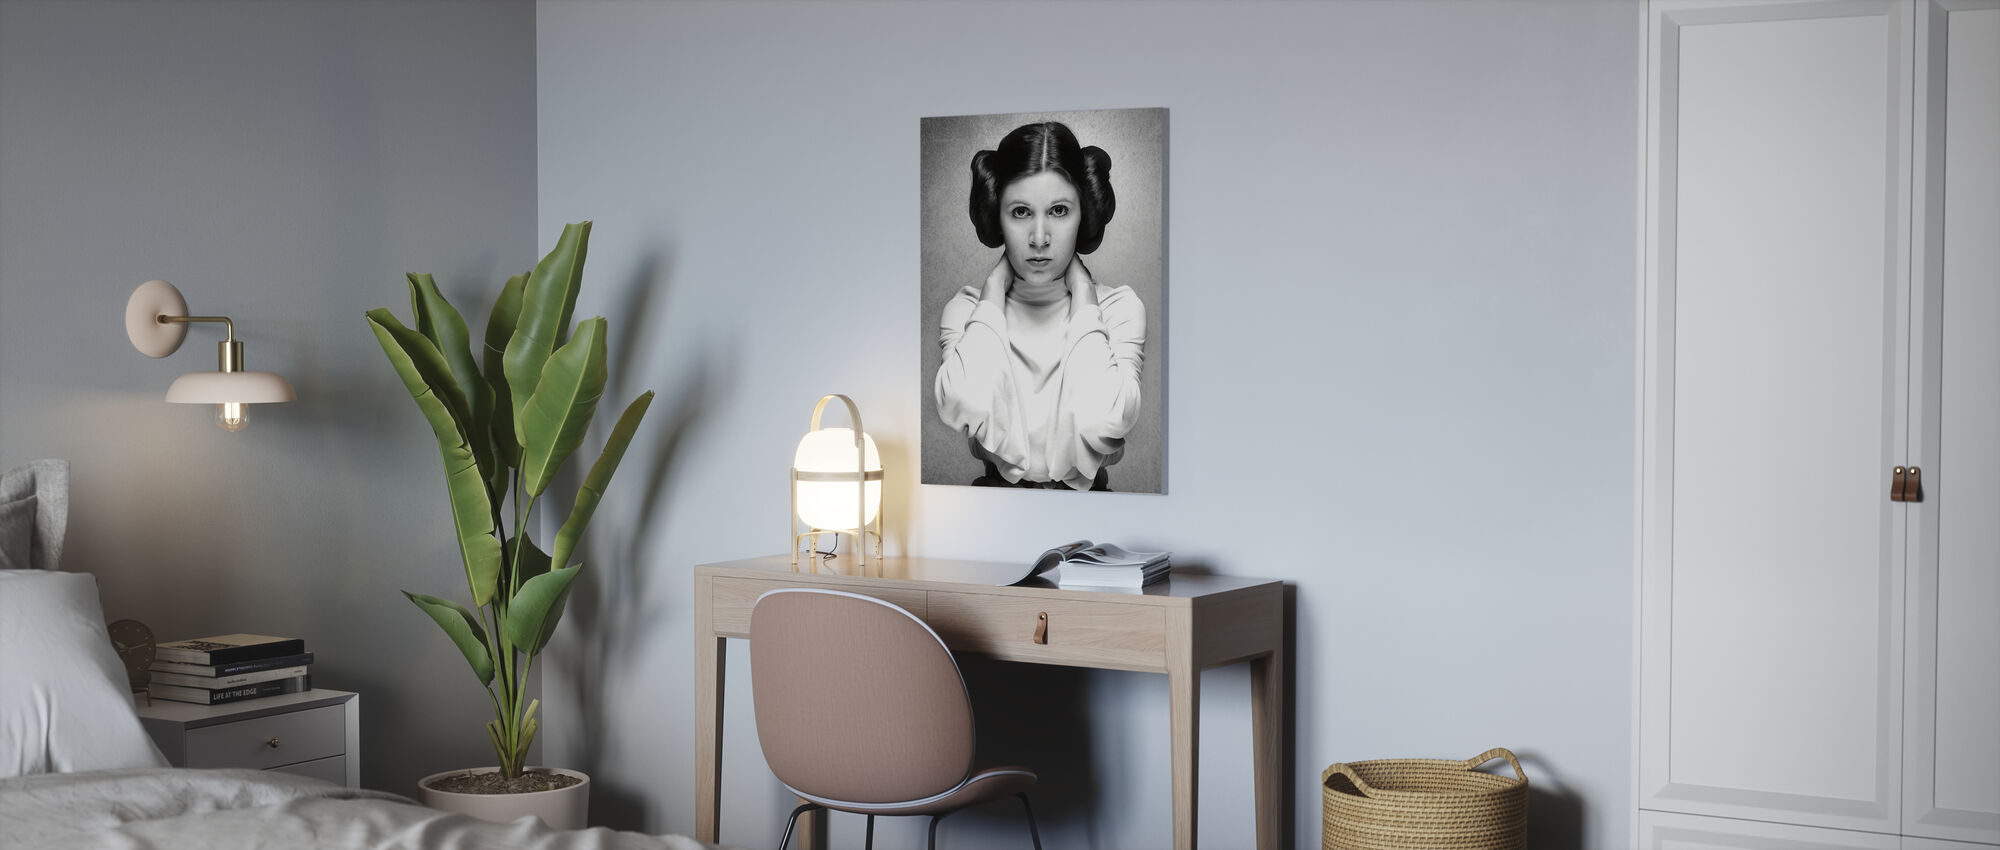 Princess Leia - Carrie Fisher - Canvas print - Office